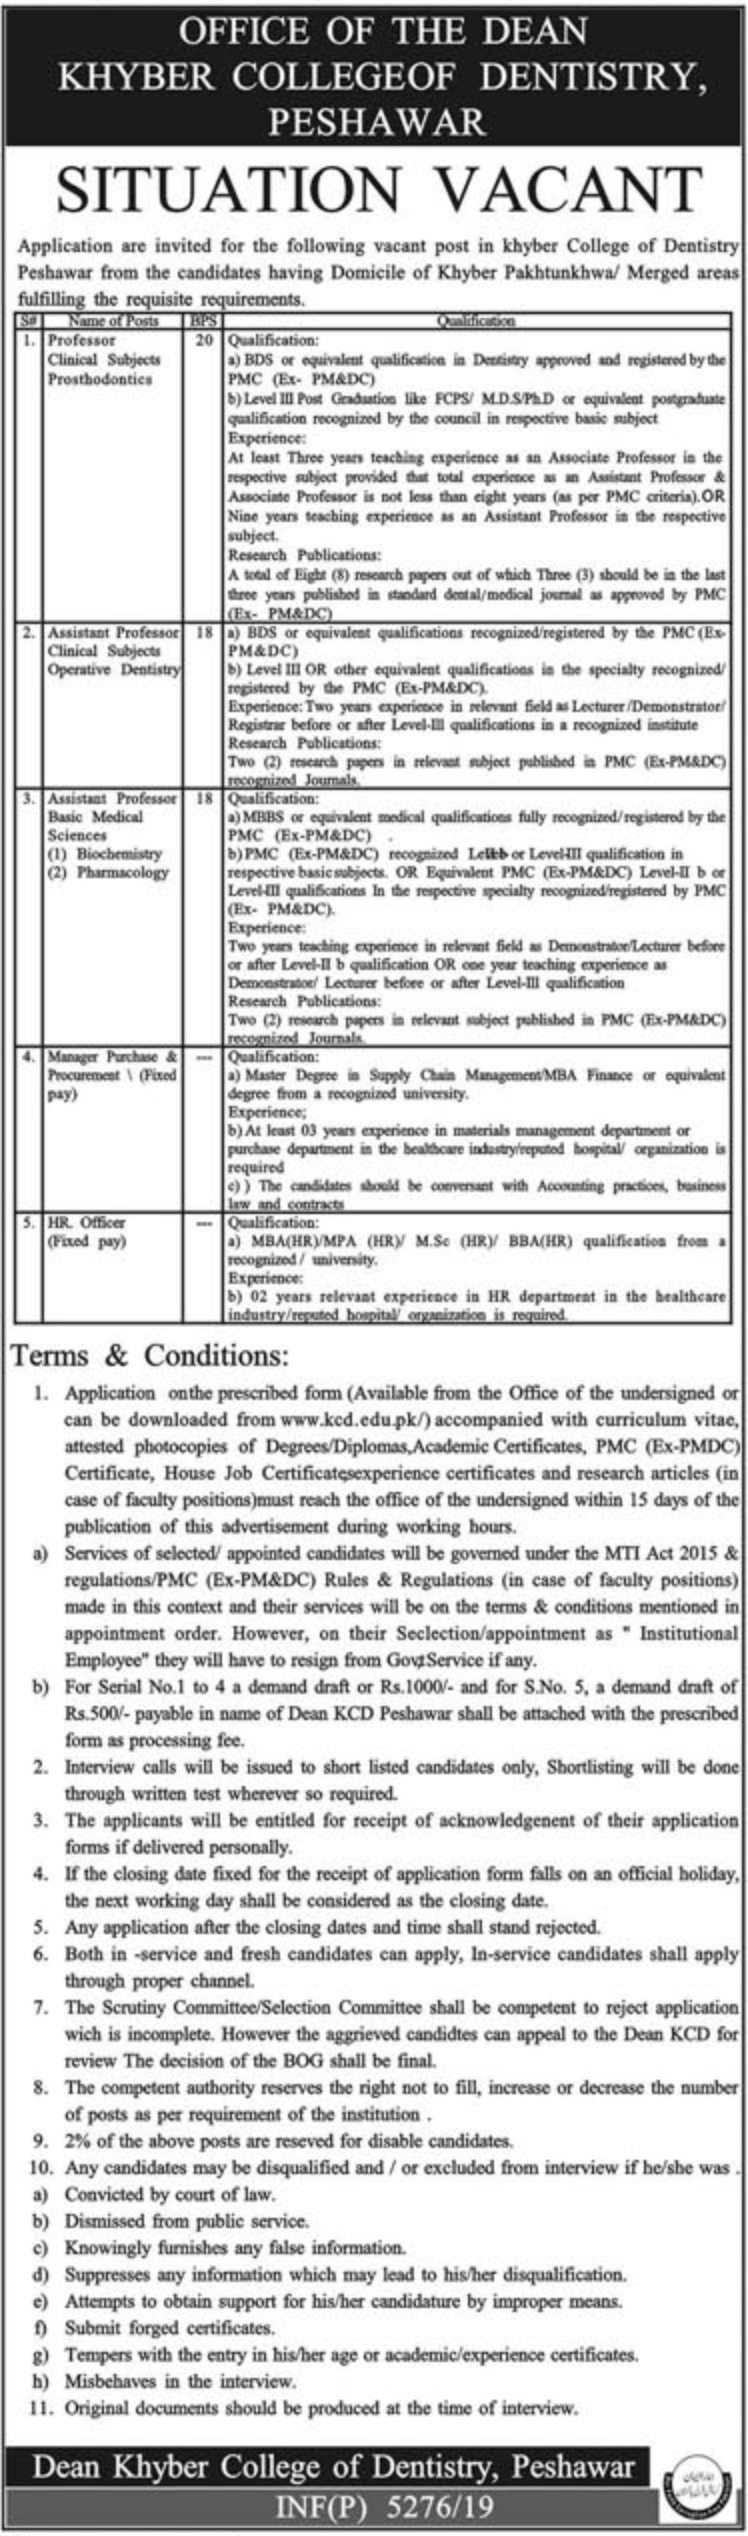 Khyber College of Dentistry Peshawar Jobs 2019